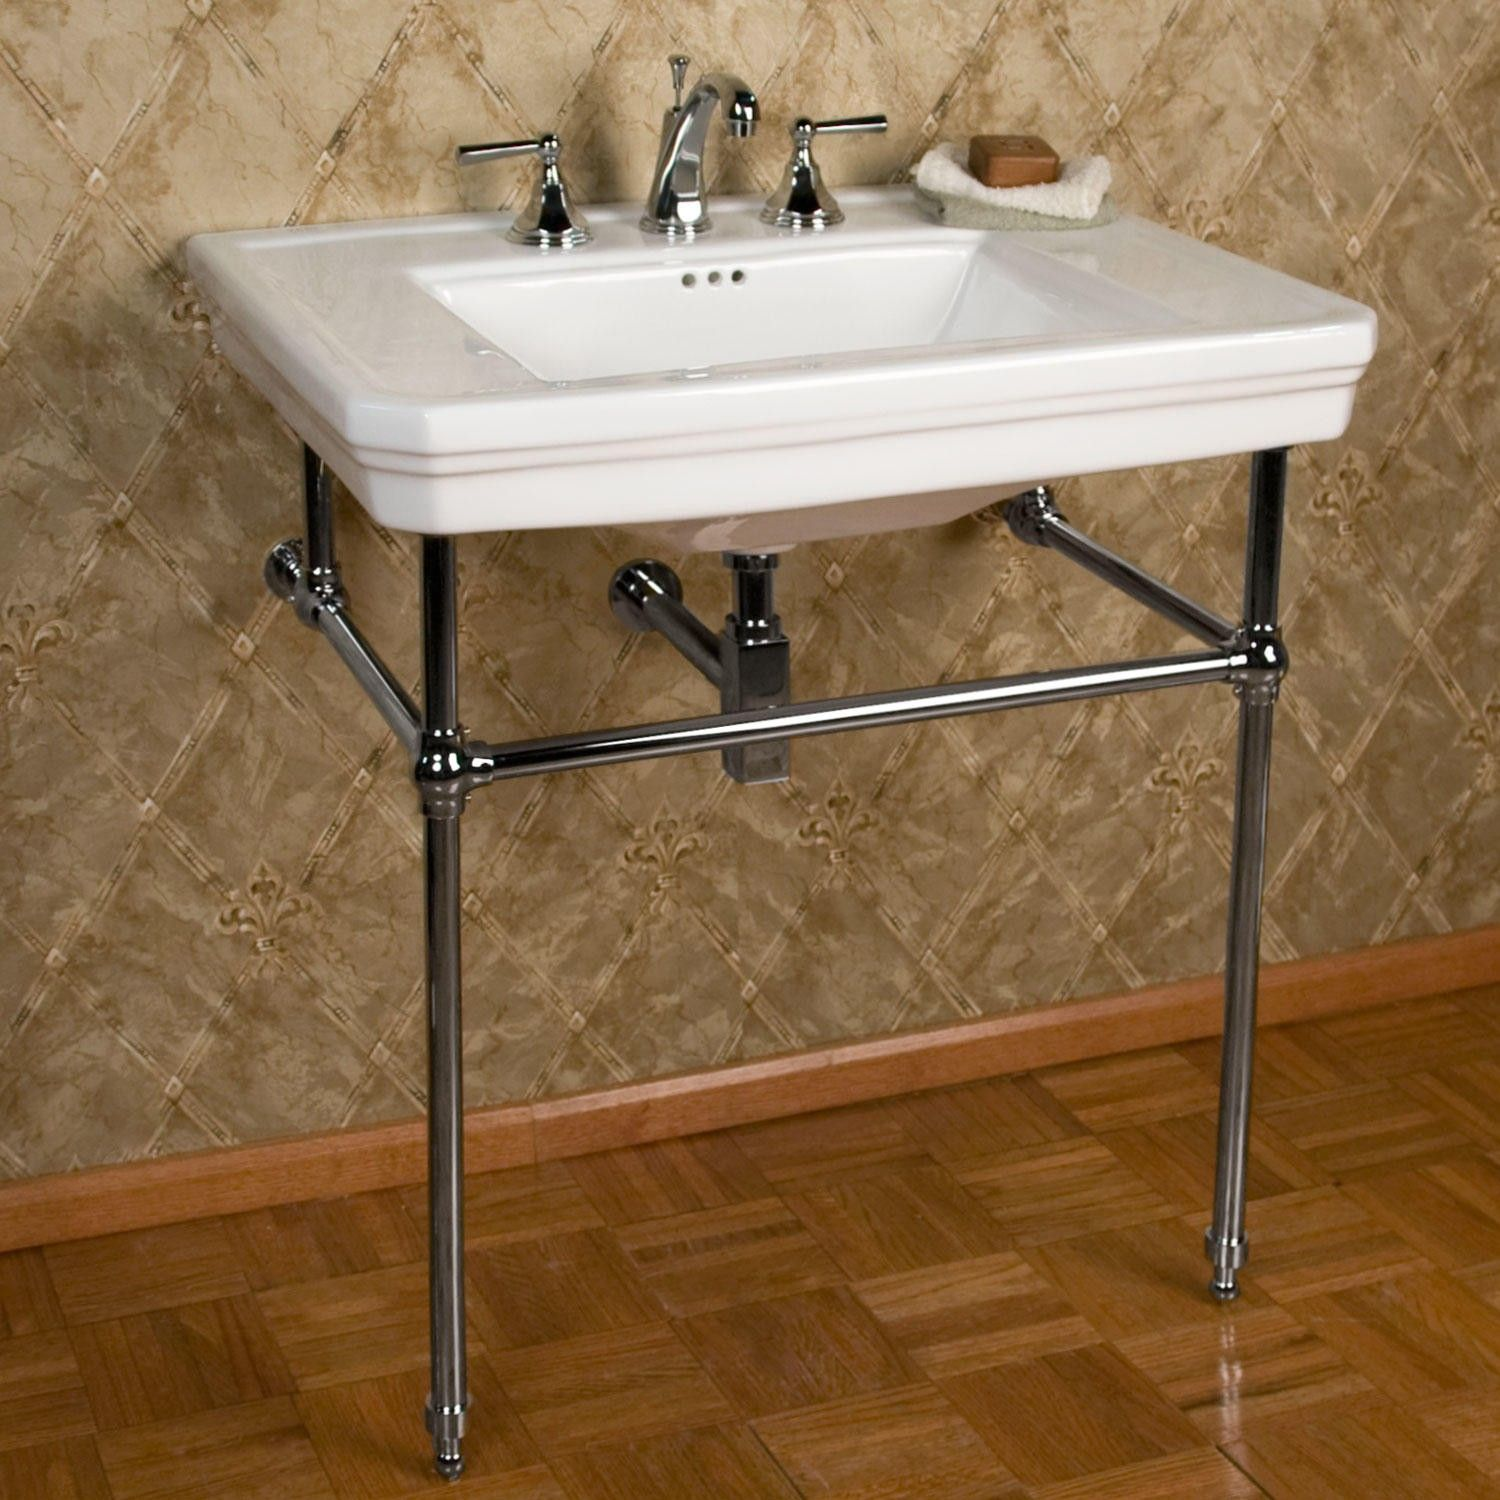 Mason Console Sink With Brass Stand Bathroom Console Sink Wall Mounted Bathroom Sinks Vintage Sink [ 1500 x 1500 Pixel ]